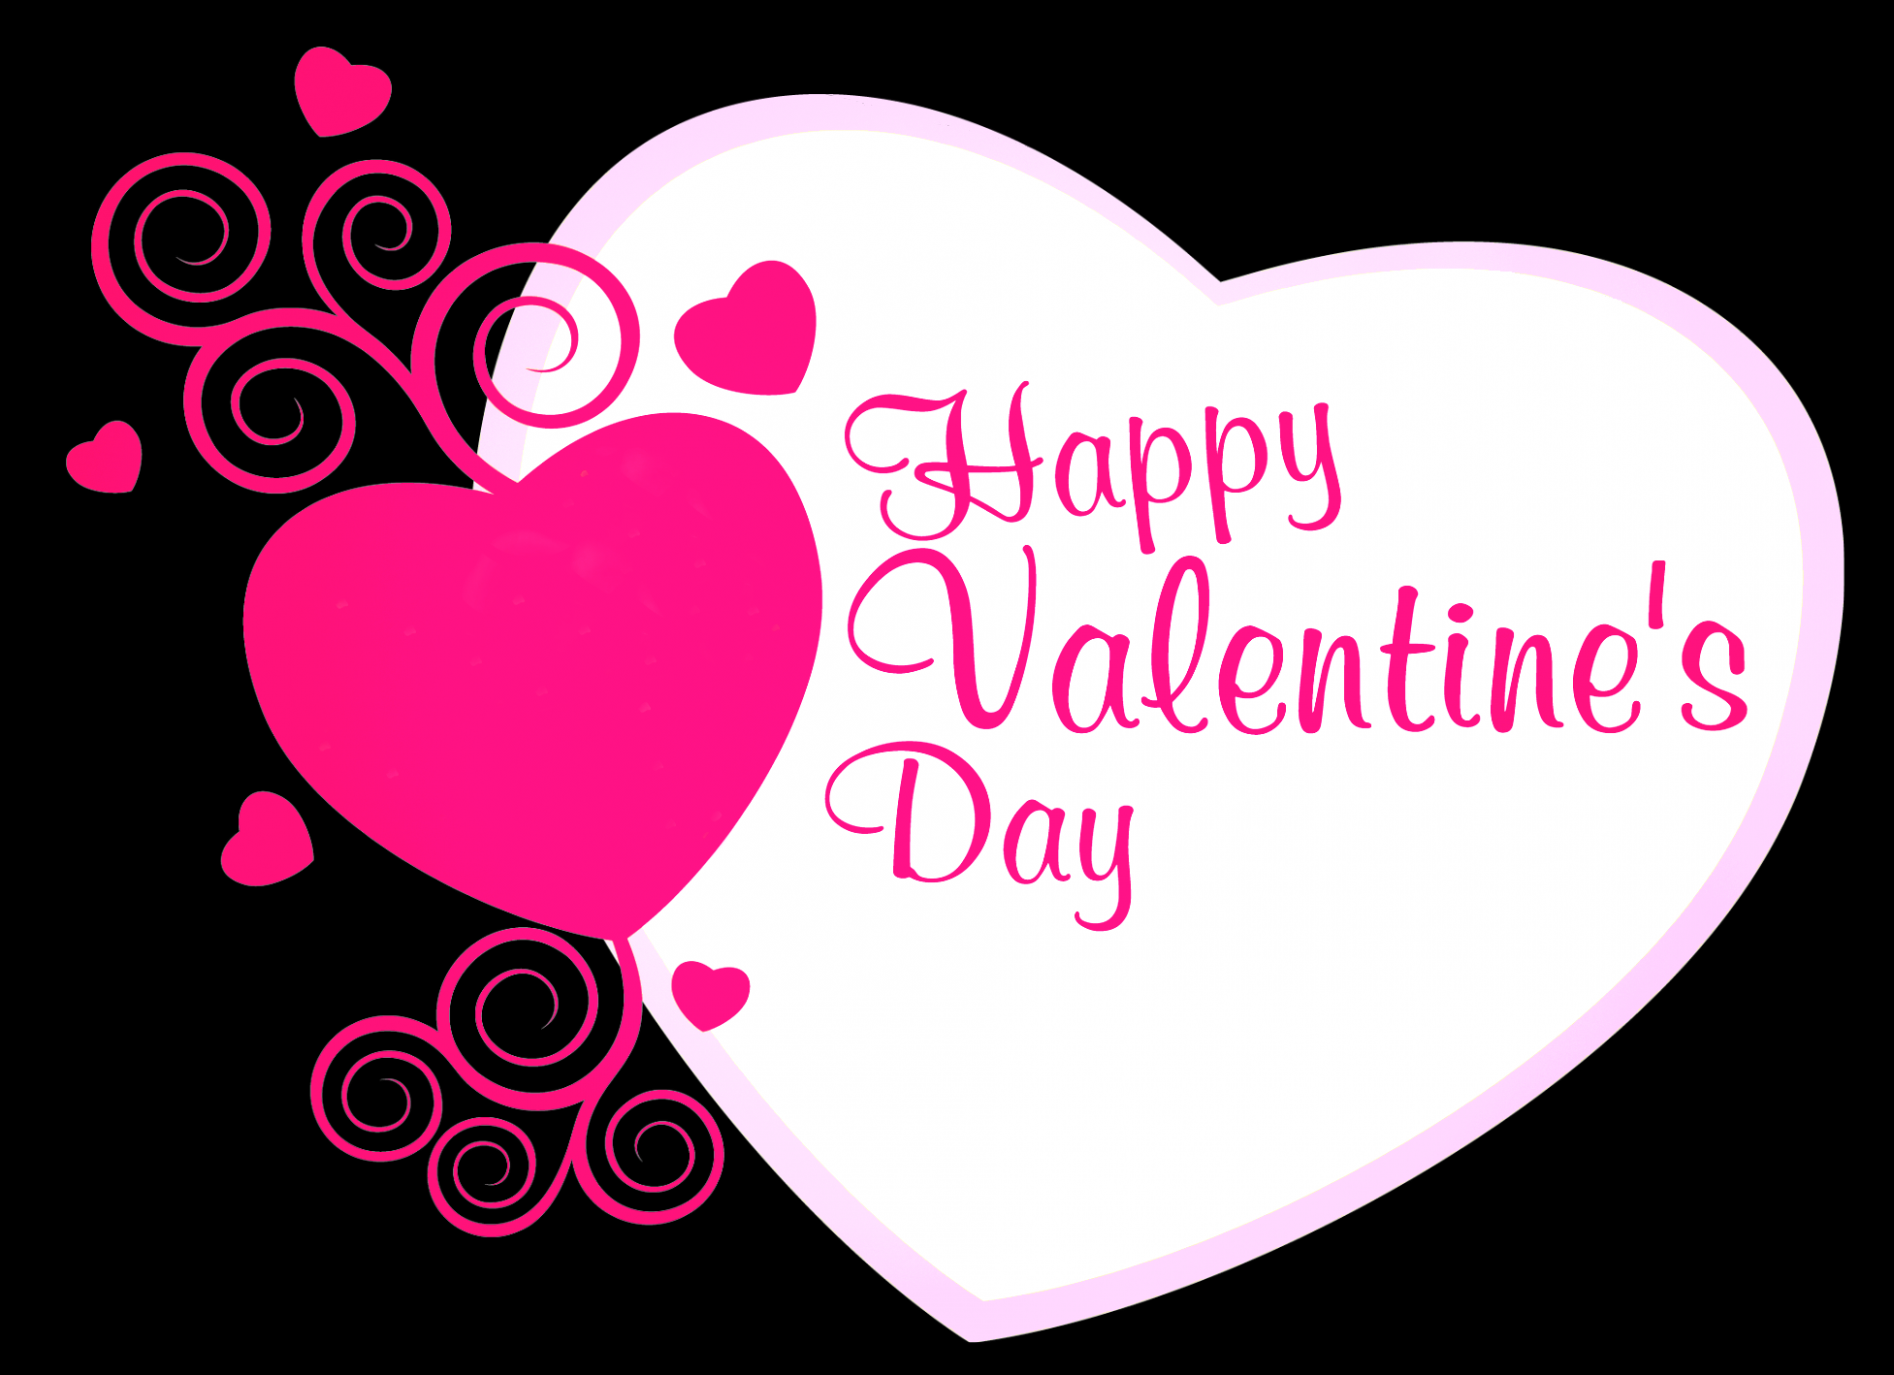 Pin By Ginnell Consulting On Funny Heart Candy Valentines For Mom Valentines Day Memes